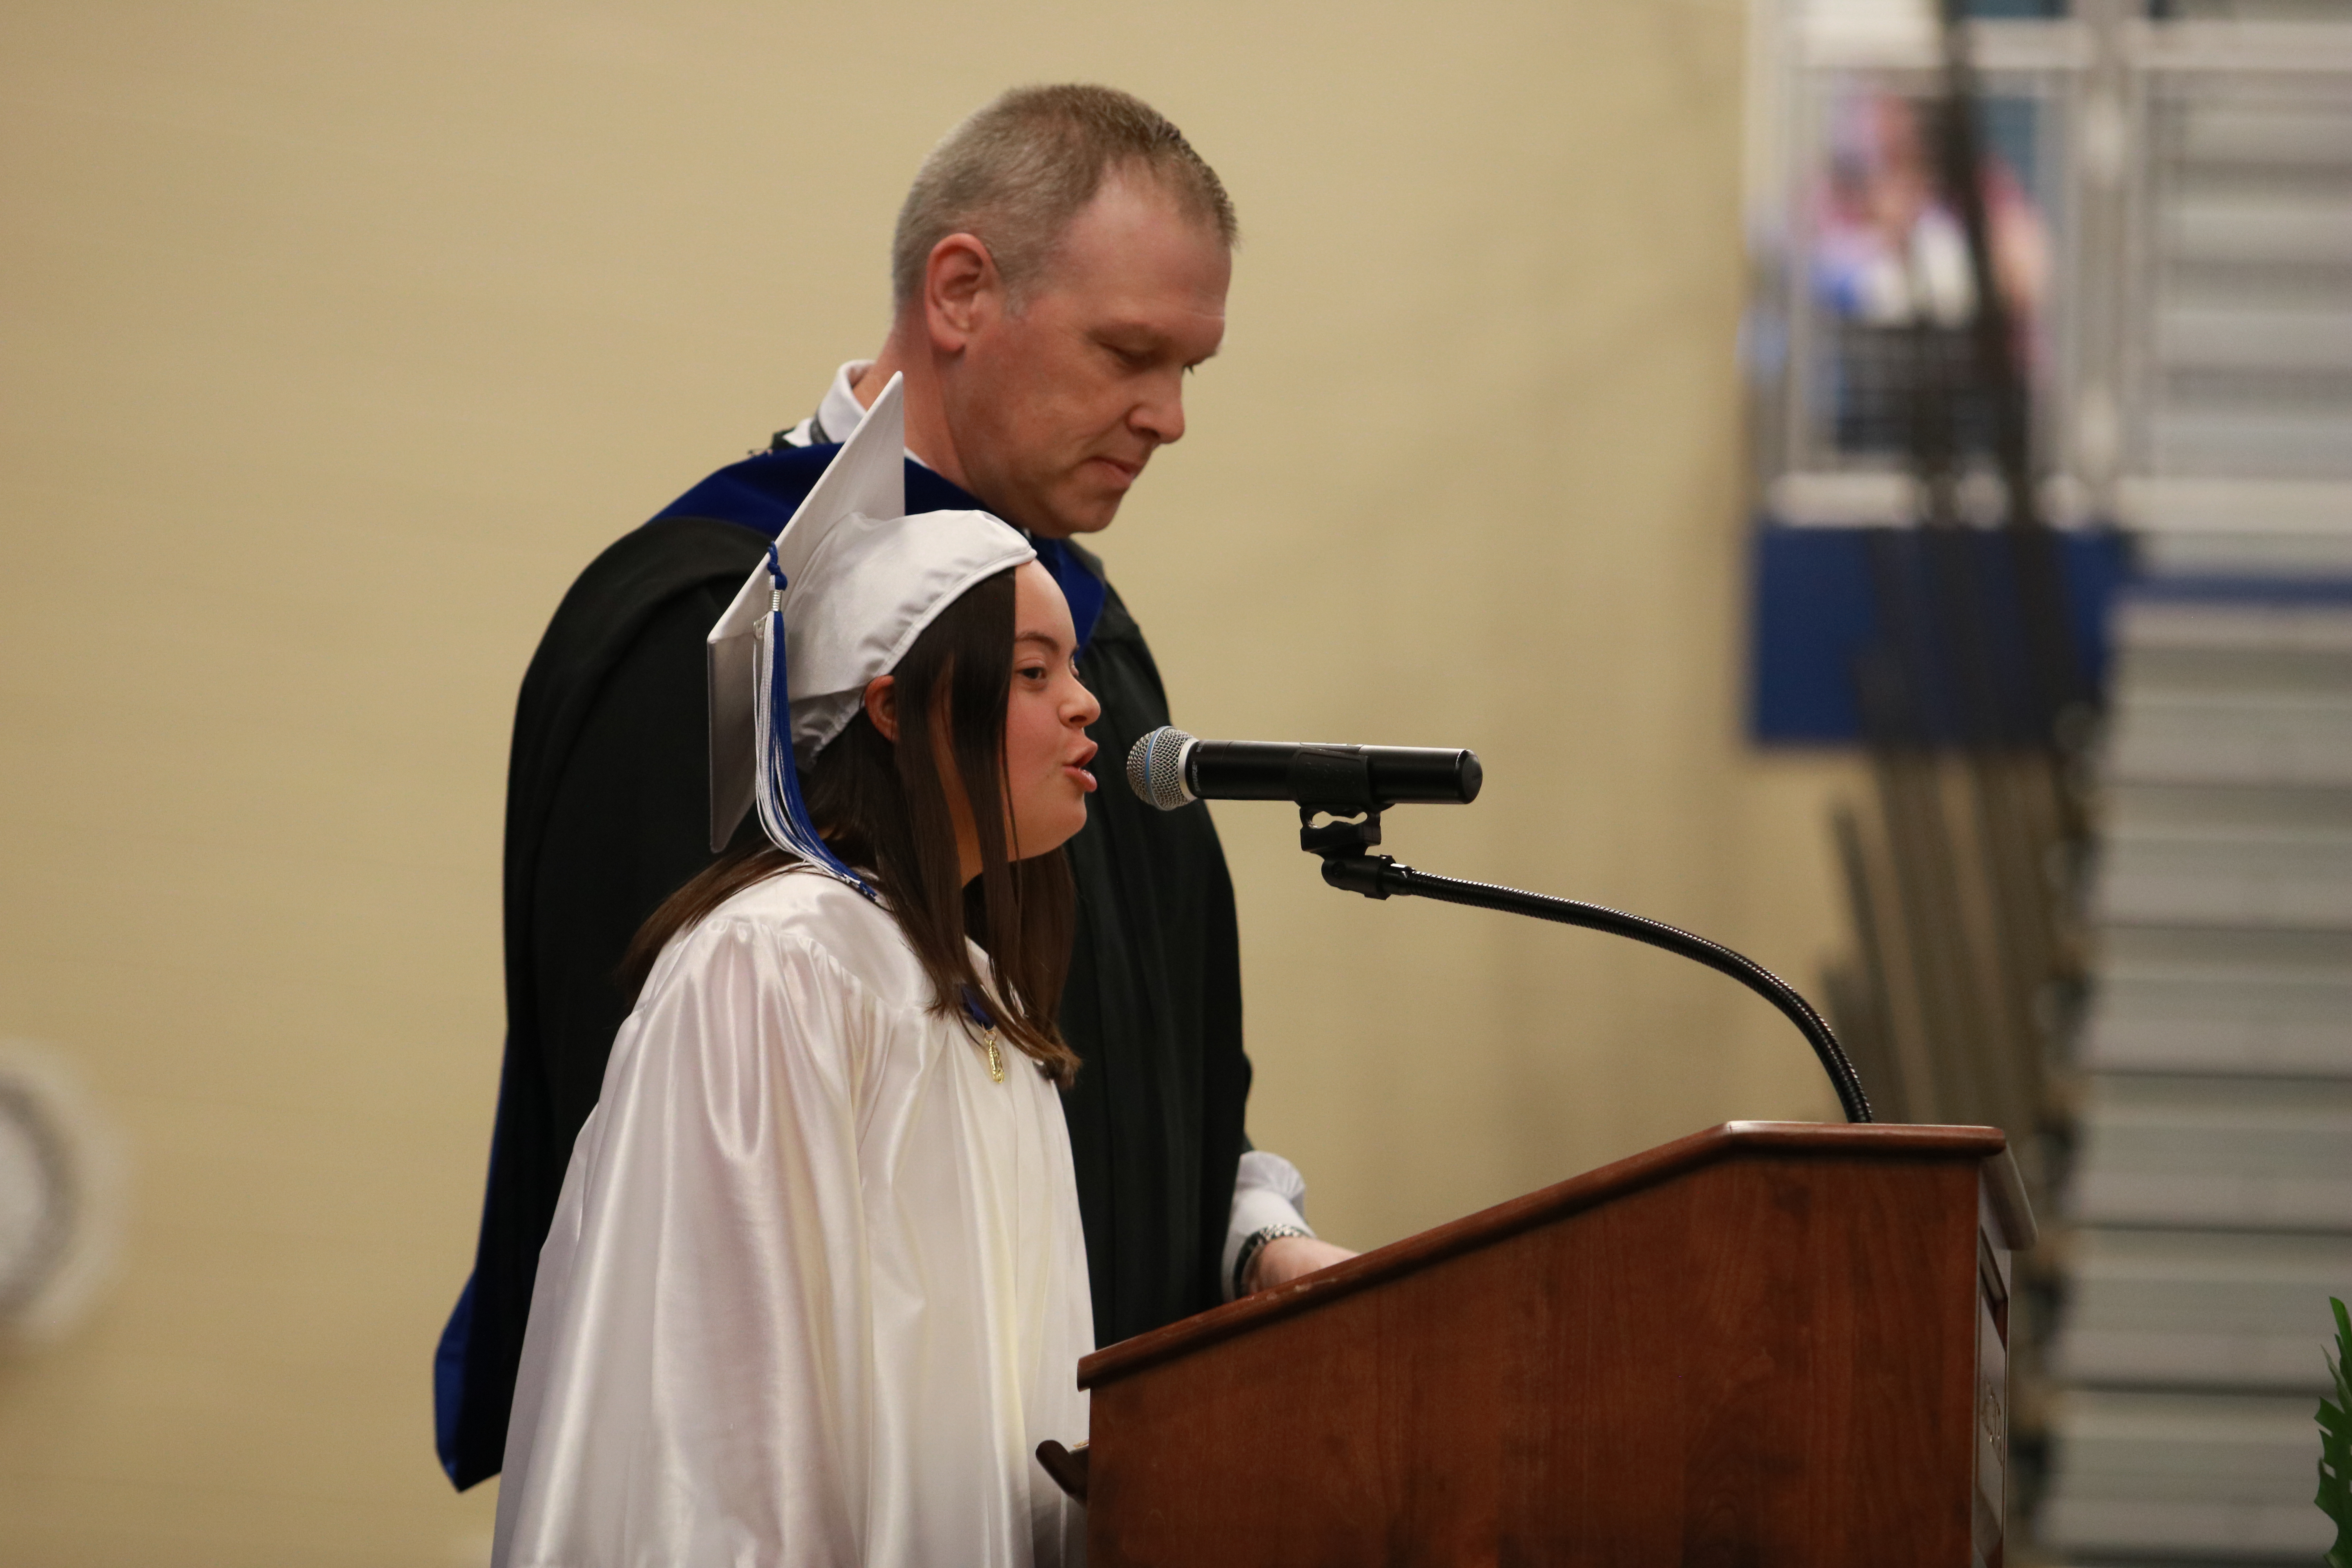 Olivia Longo along with Mr. Begley greeted the class of 2019 at the beginning of the graduation ceremony on June 2nd.